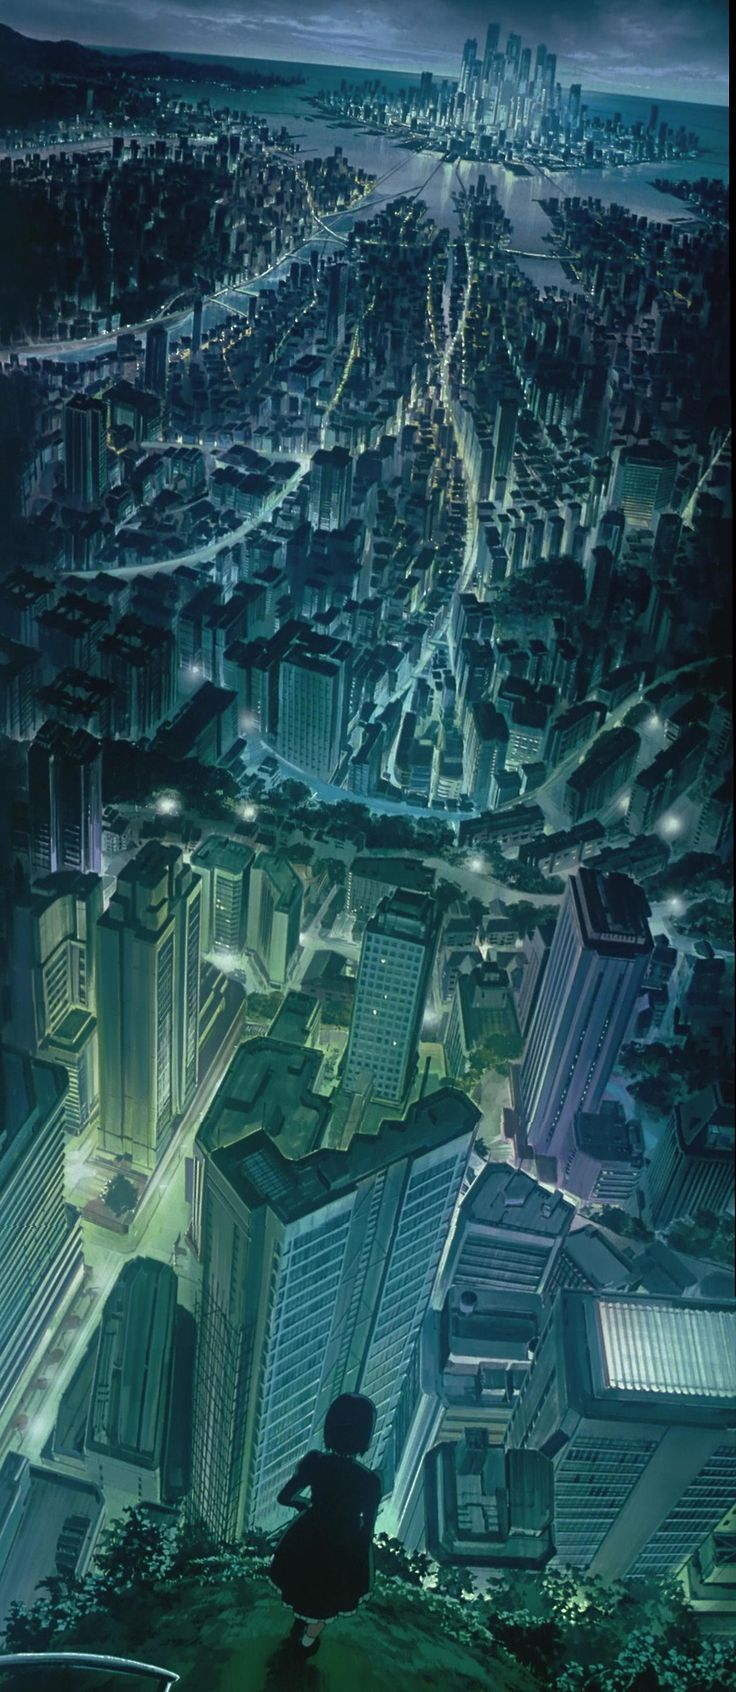 still from Ghost in the Shell by Mamoru Oshii: